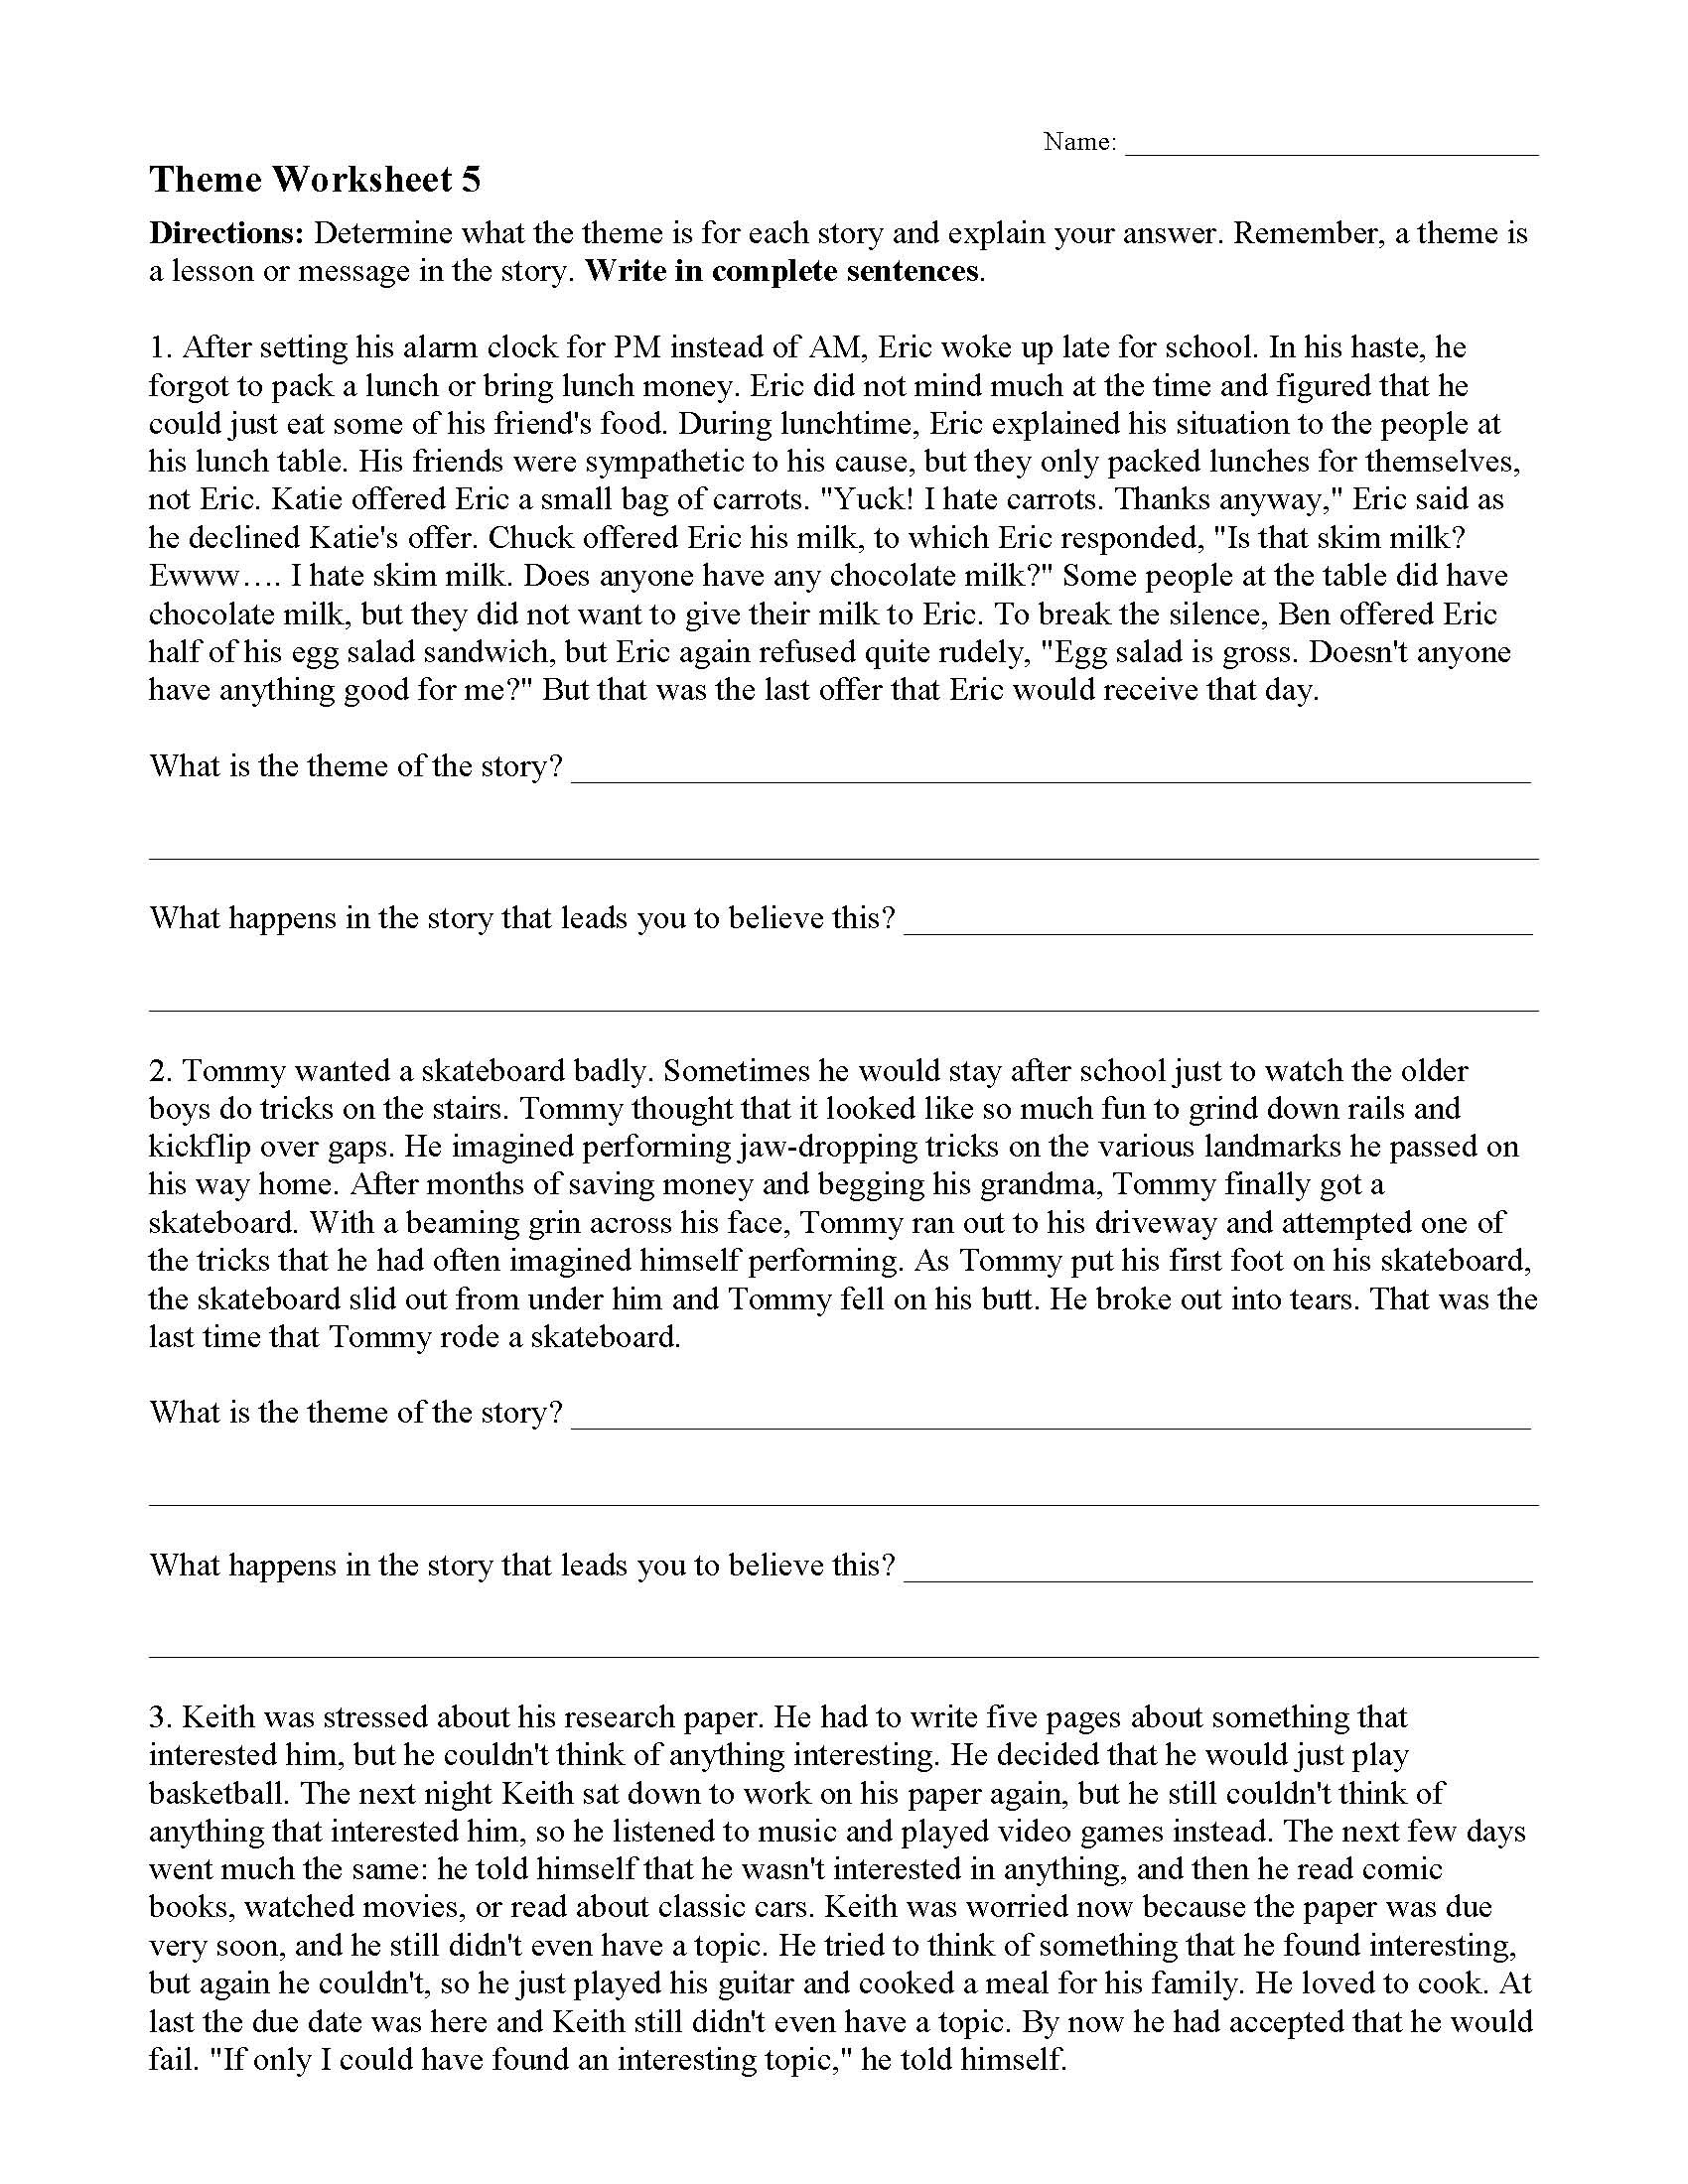 Theme Worksheets Grade 5 theme Worksheet 5